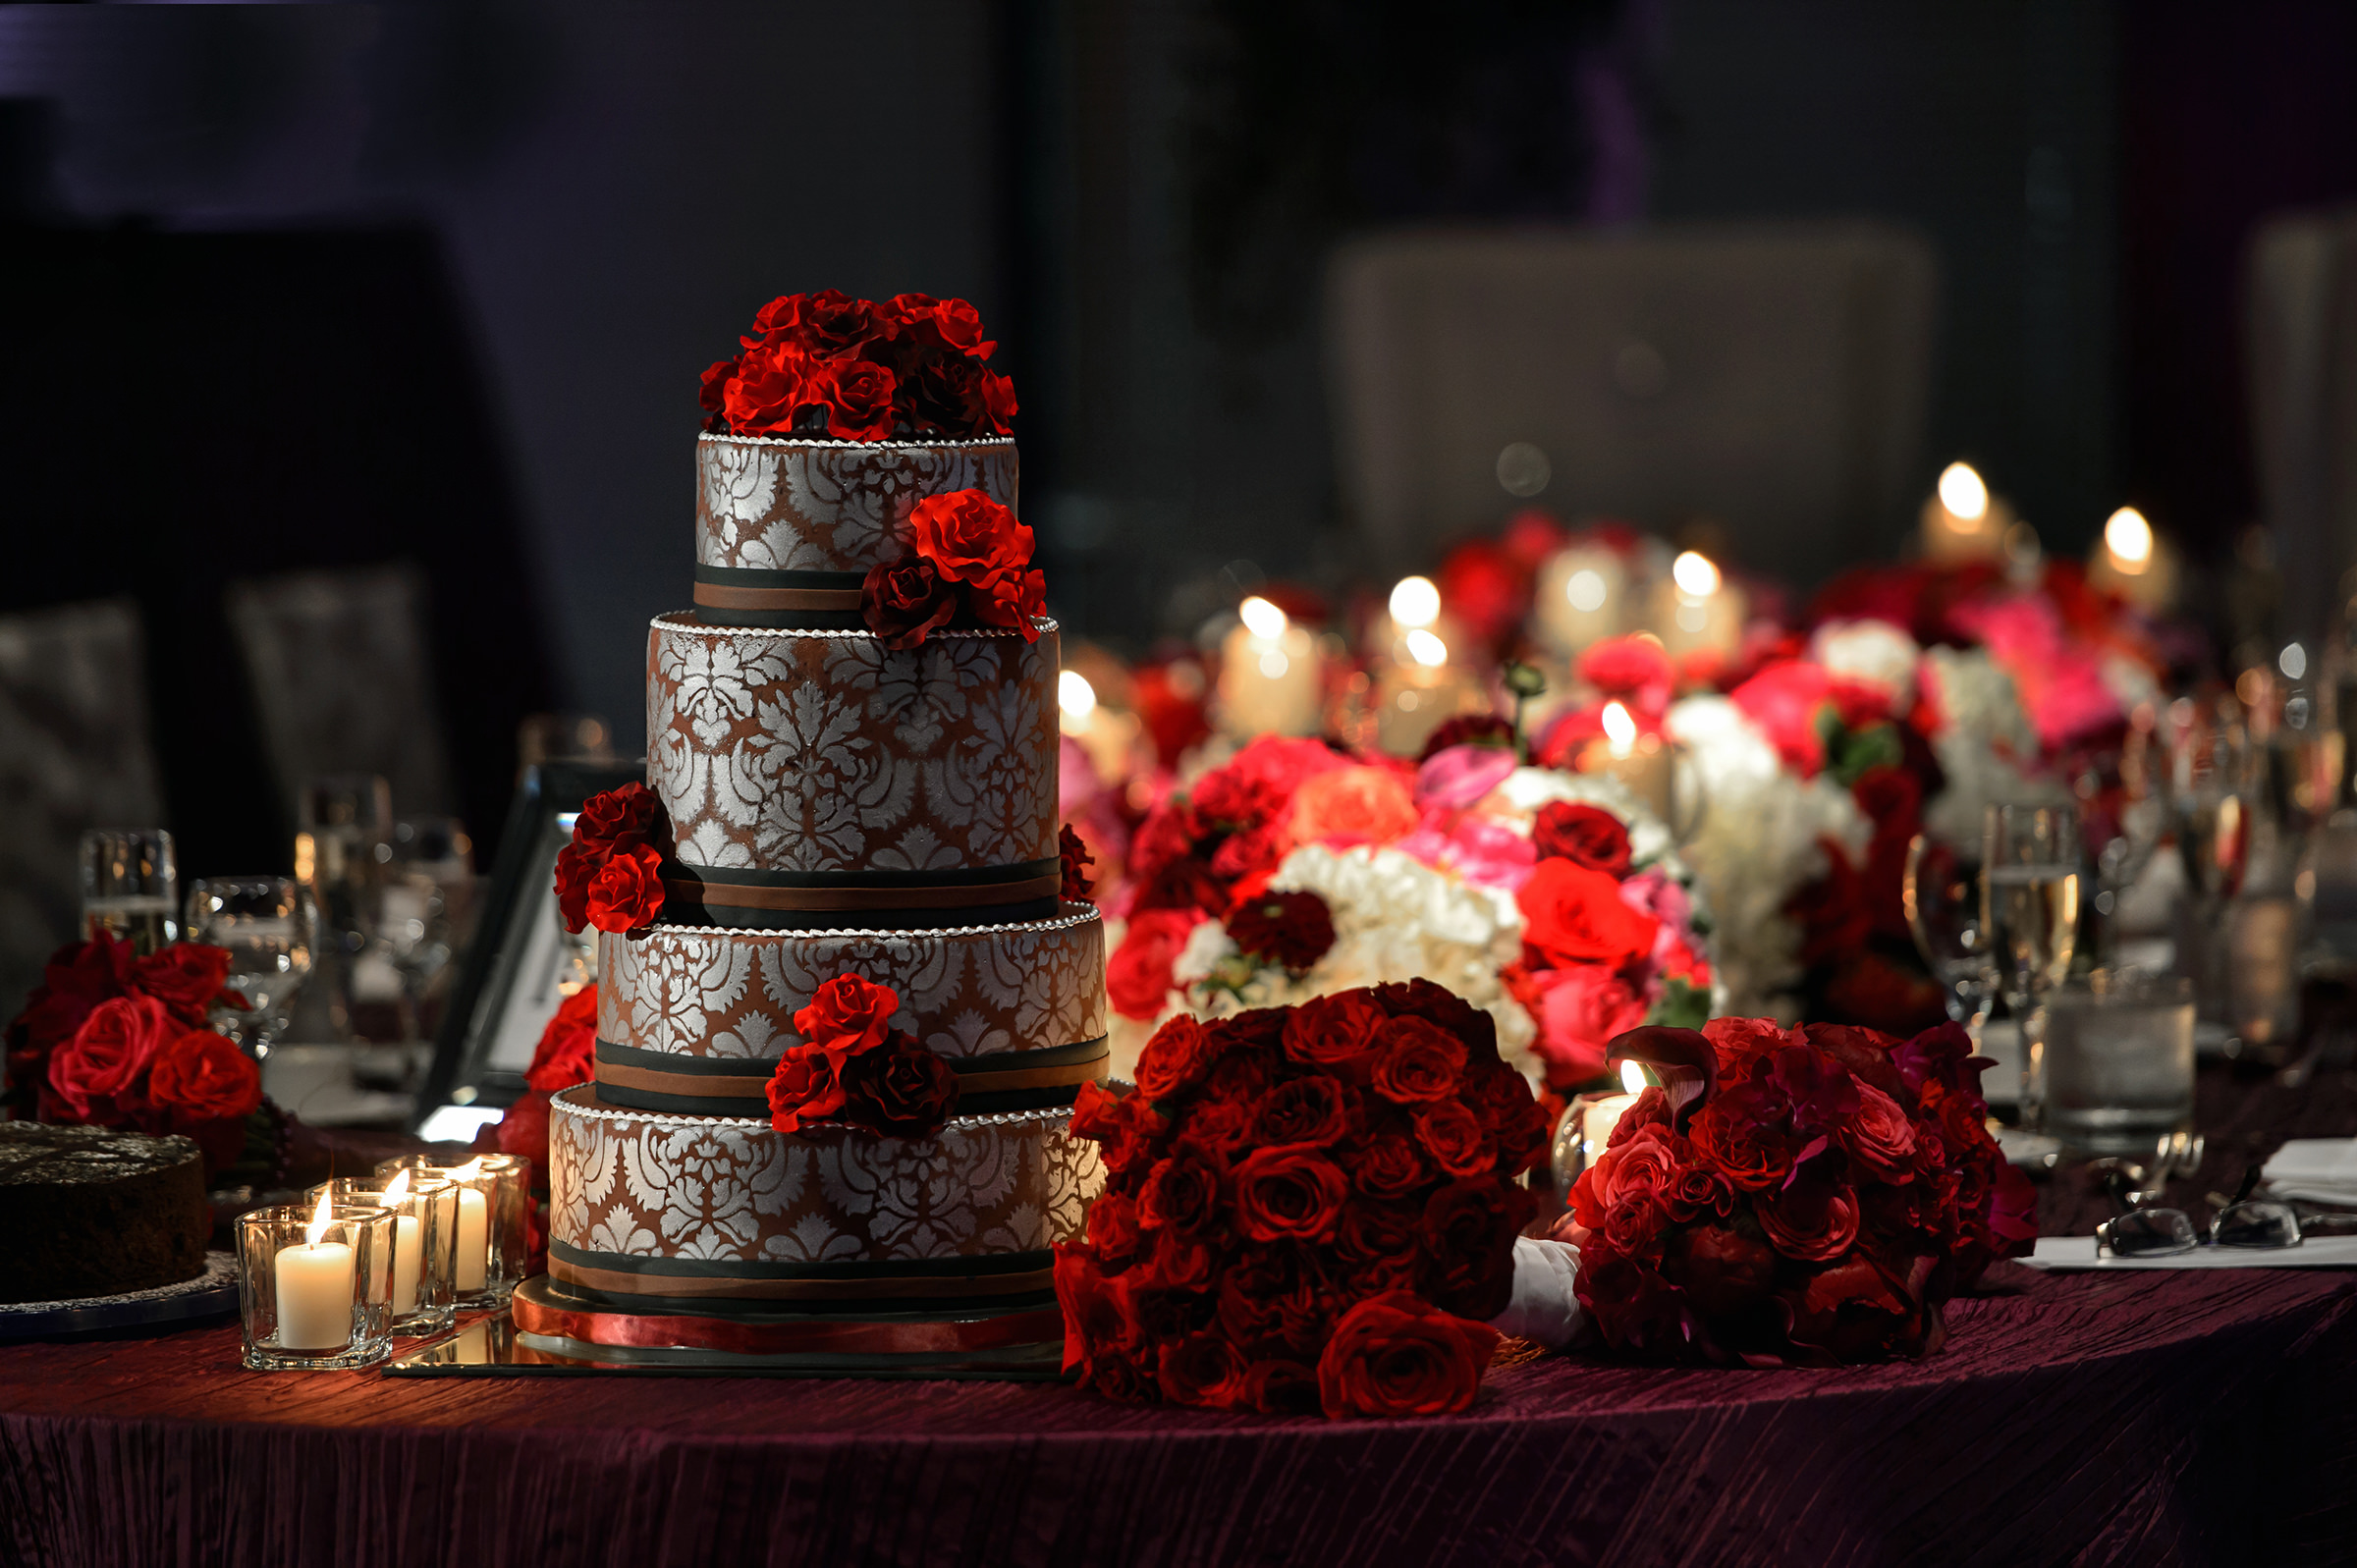 Wedding cake decorated with red roses - photo by David & Sherry Photography